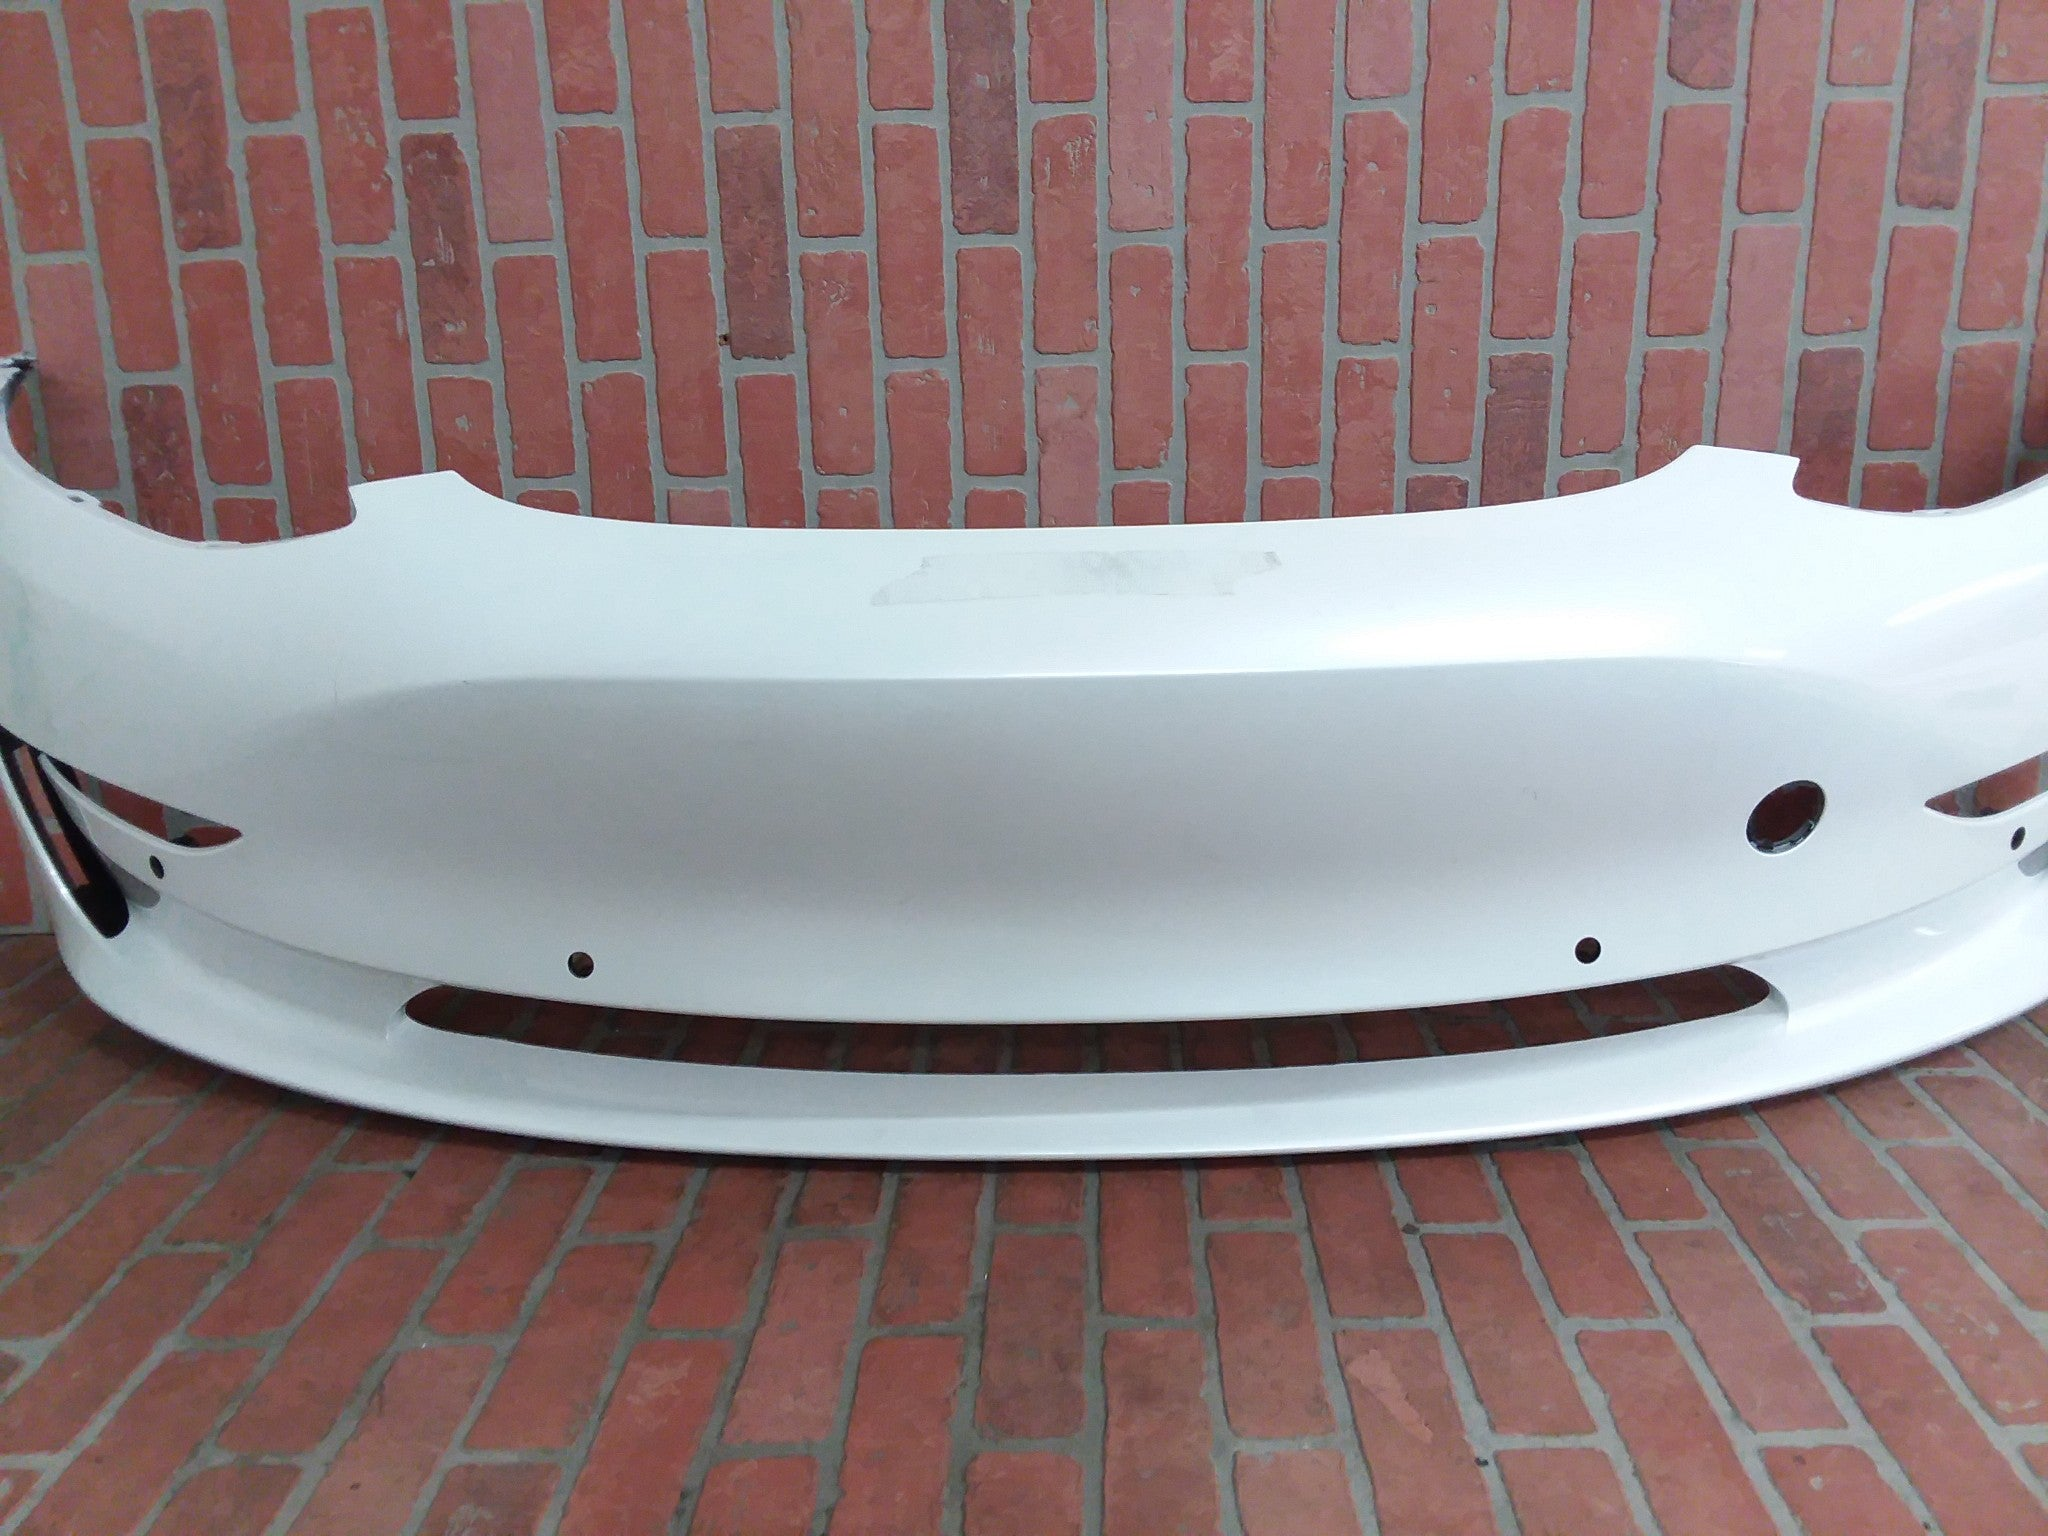 2017 2018 2019 TESLA MODEL 3 FRONT BUMPER 1084175-00 WHITE OEM - CR Auto Parts